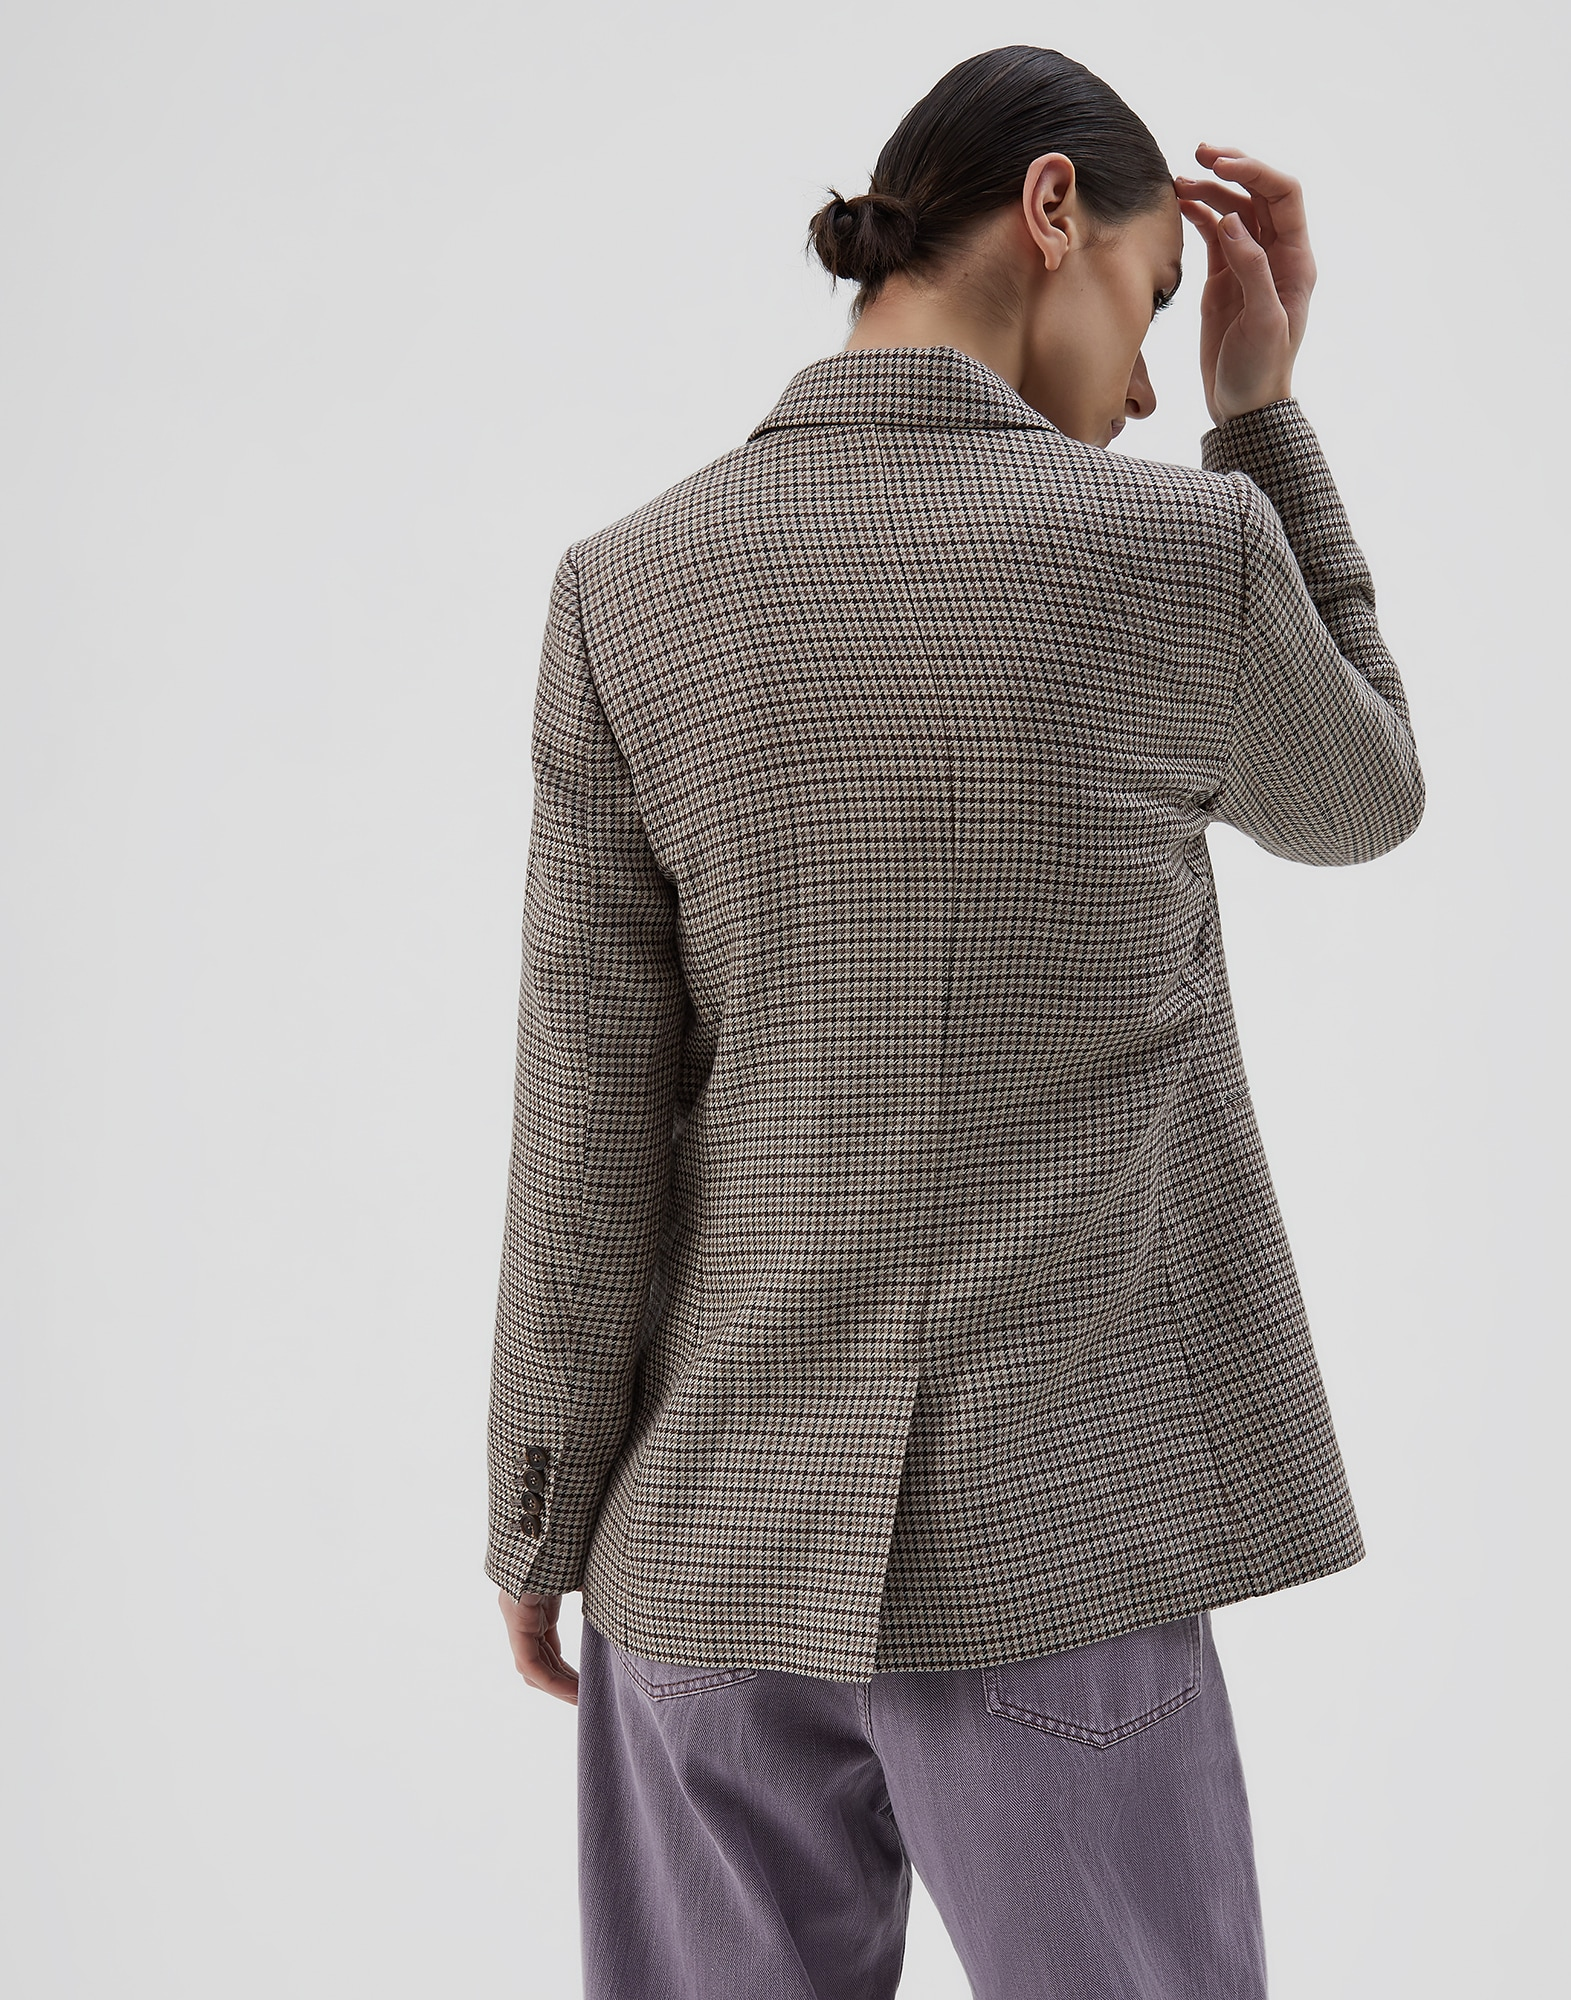 Blazer Tobacco Woman 2 - Brunello Cucinelli